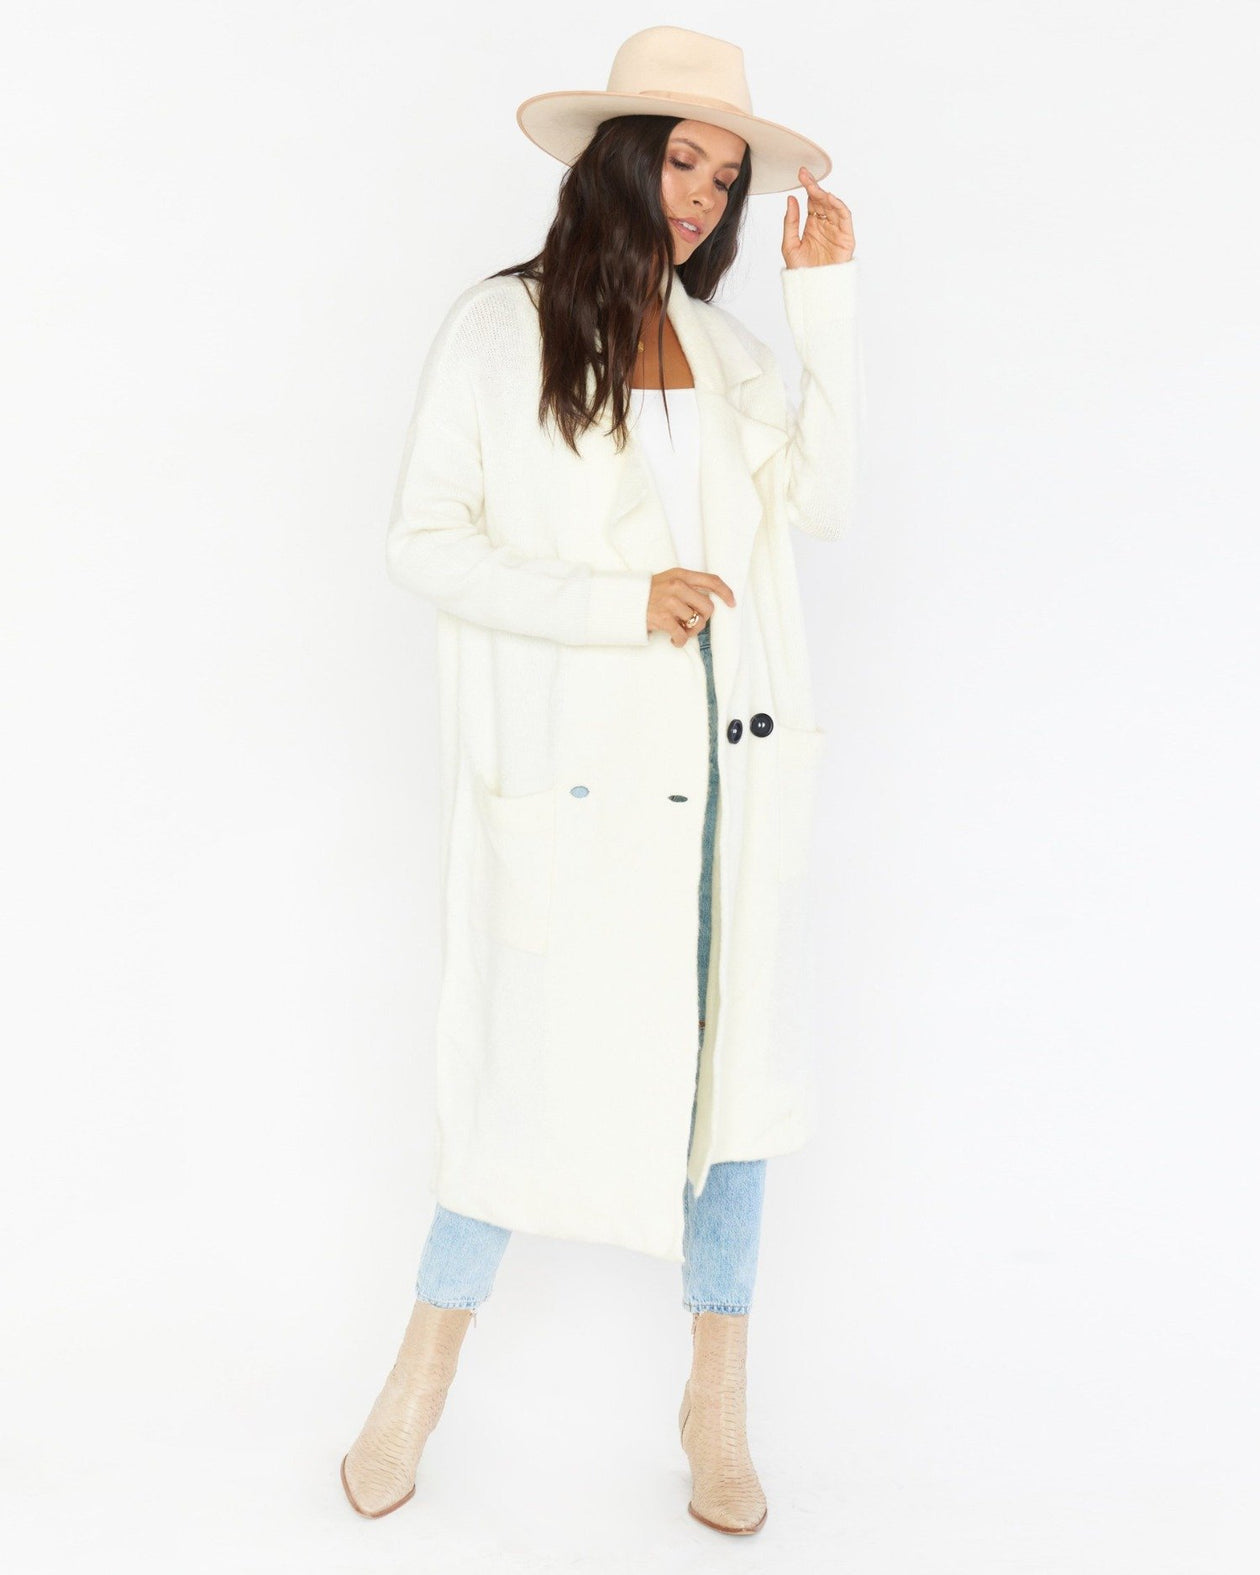 Melrose Sweater Jacket - Cream Knit | Show Me Your Mumu - Women's Outerwear